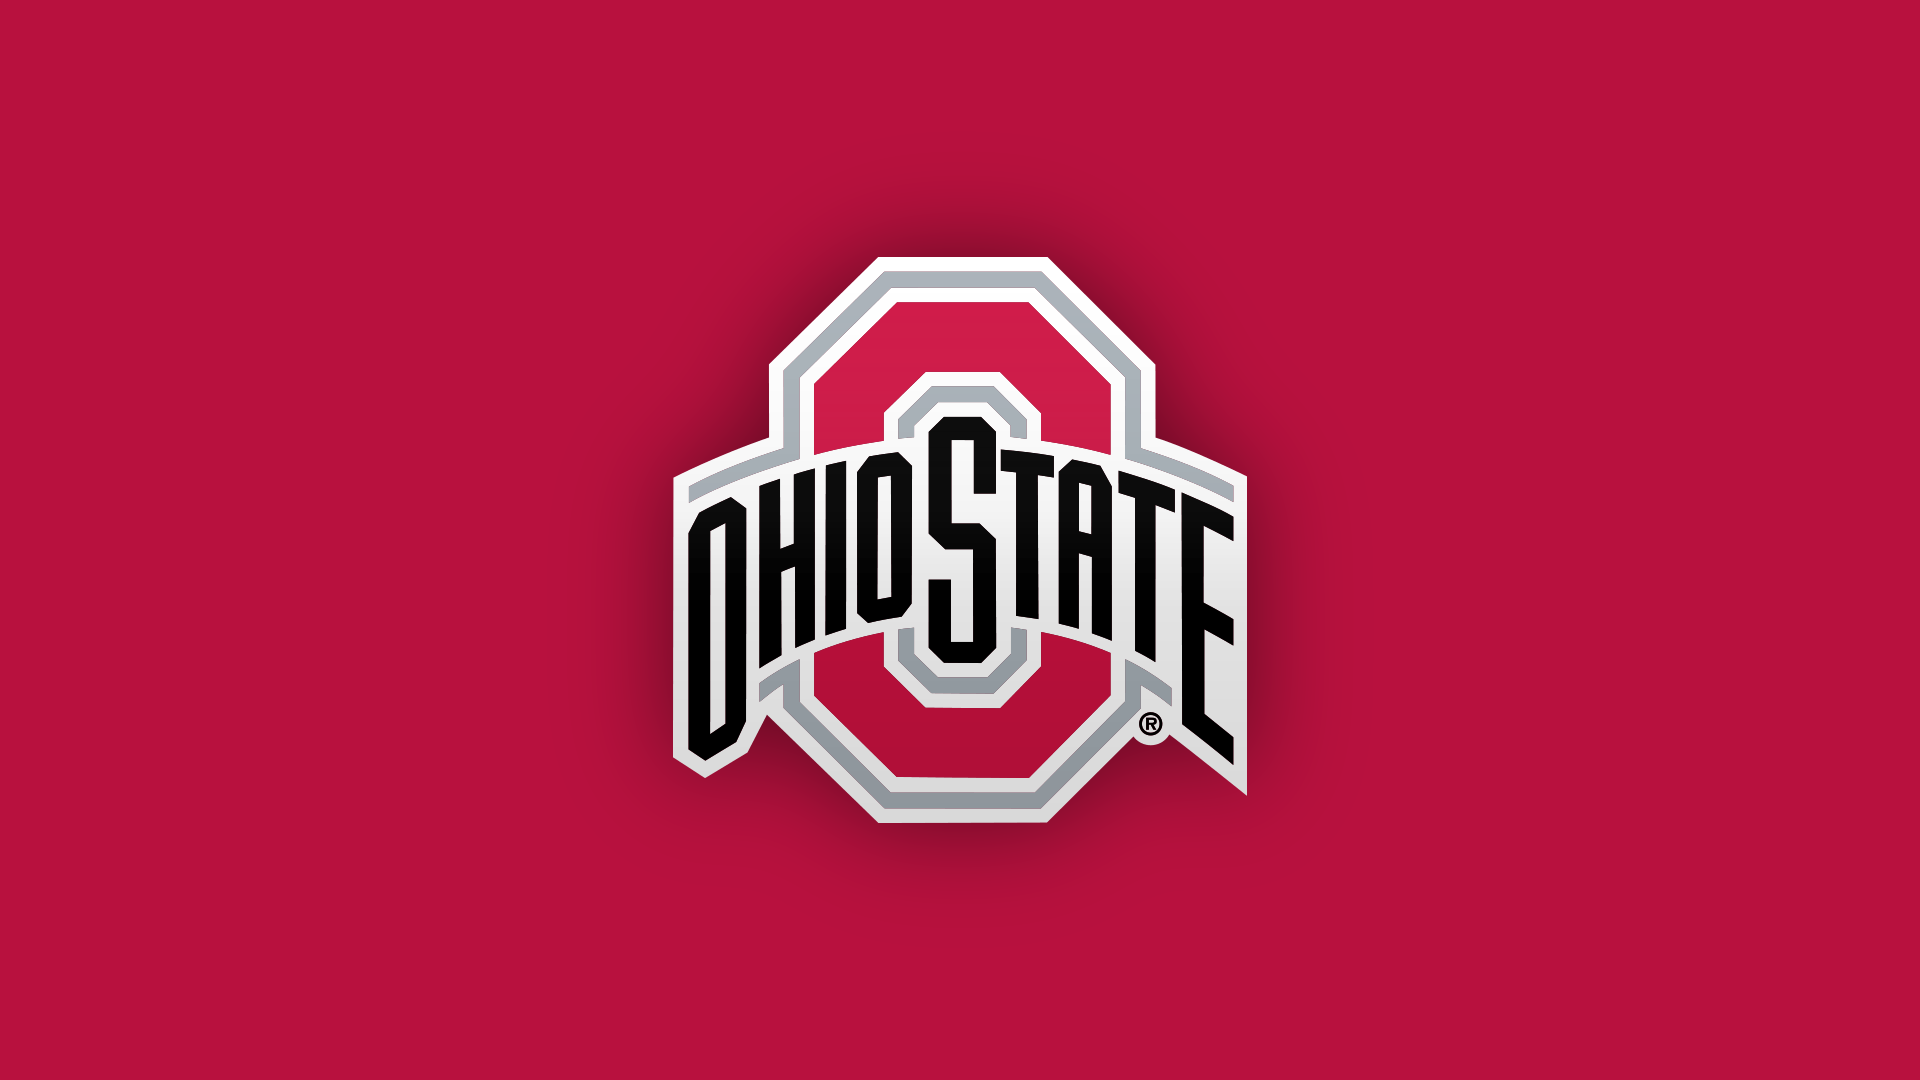 How To Watch The Ohio State Buckeyes Live Without Cable In 2020 The Streamable